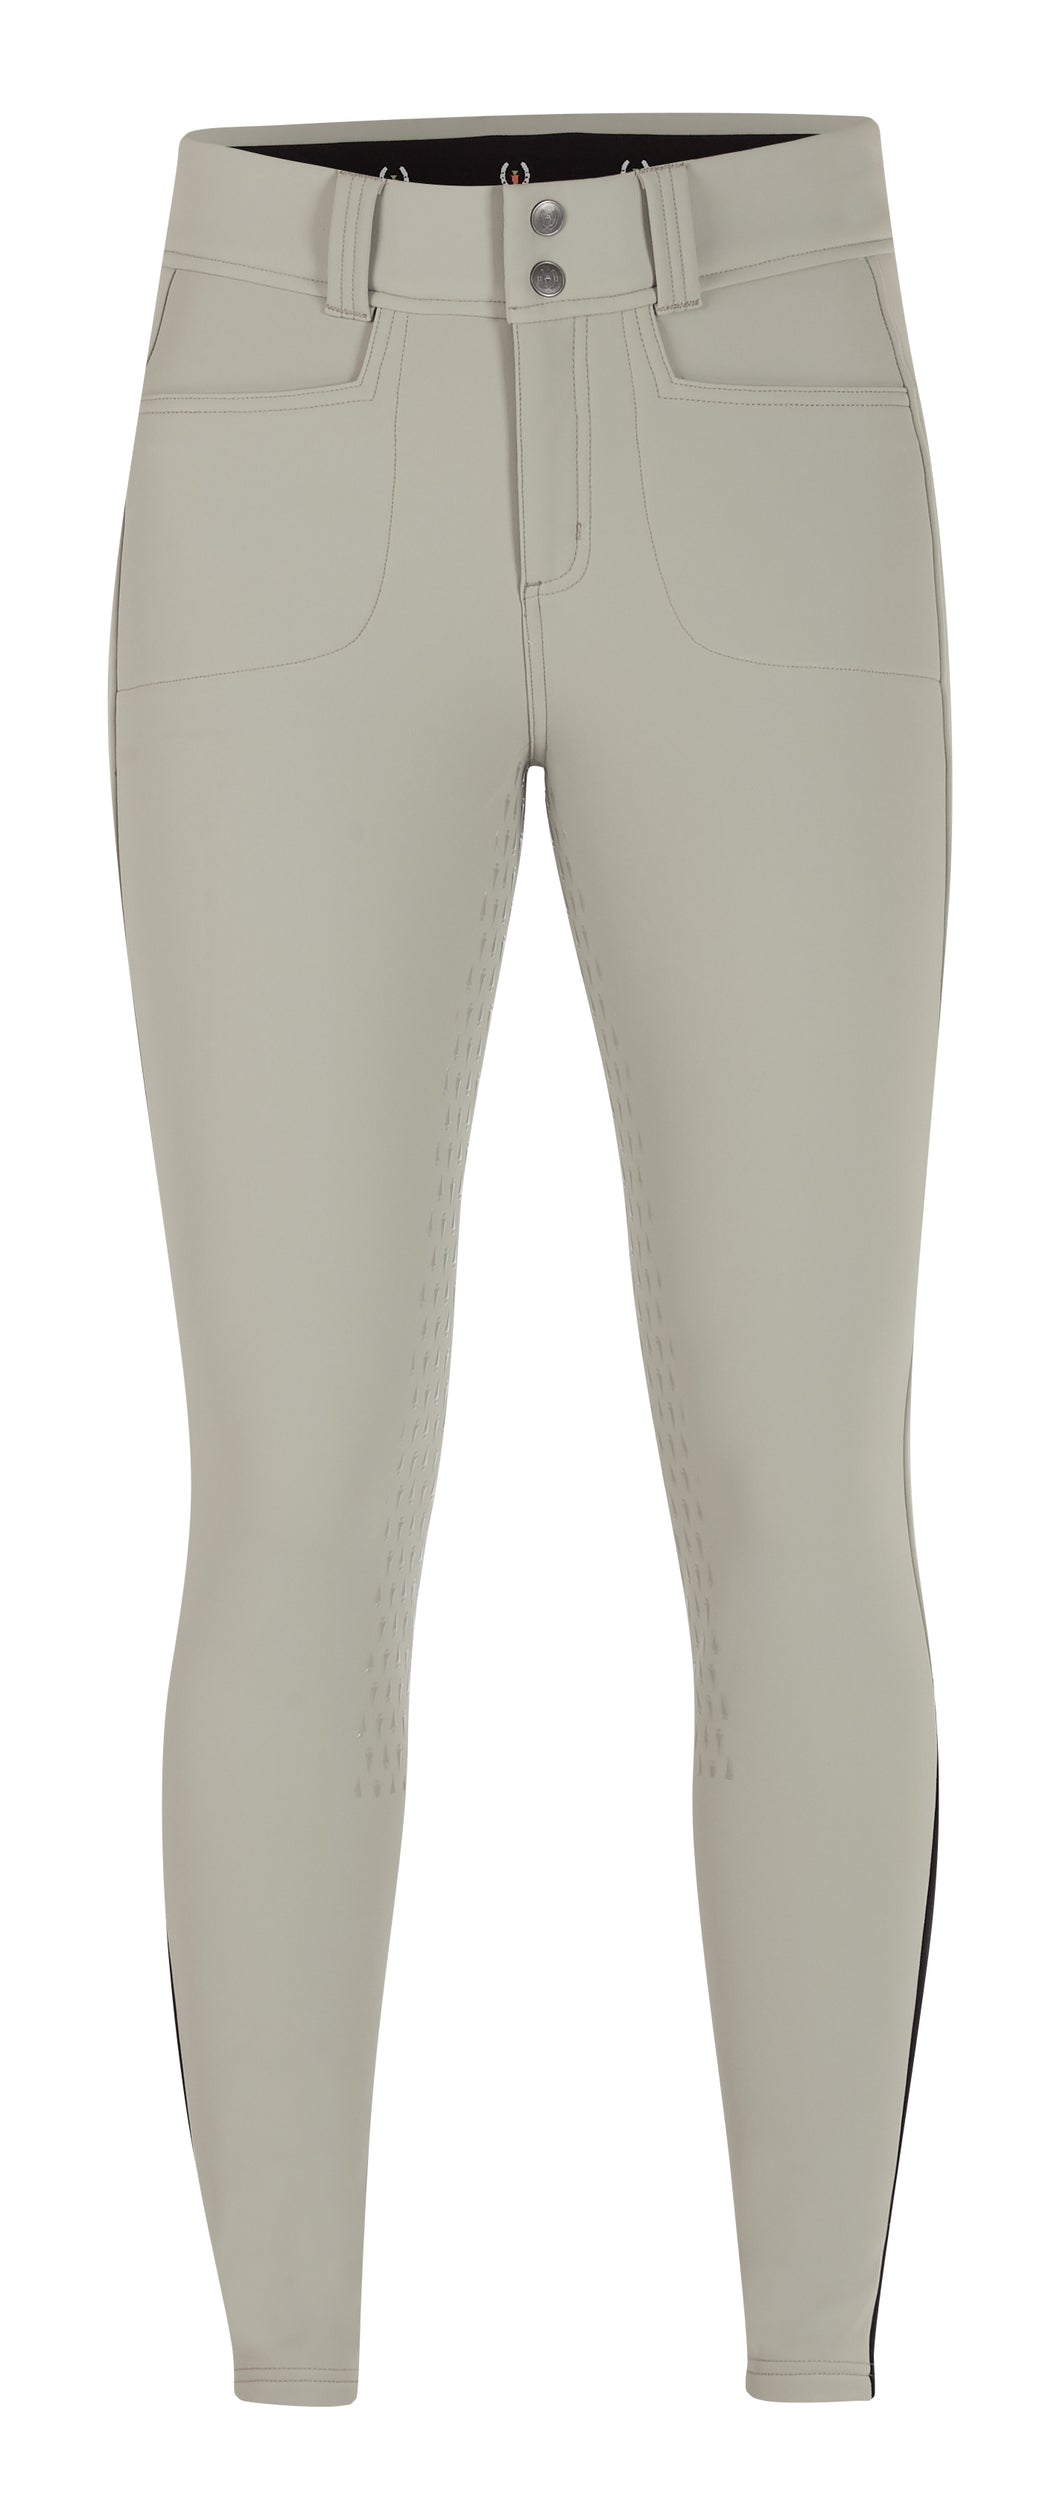 Kerrits 3-Season Tailored Knee Patch Breeches